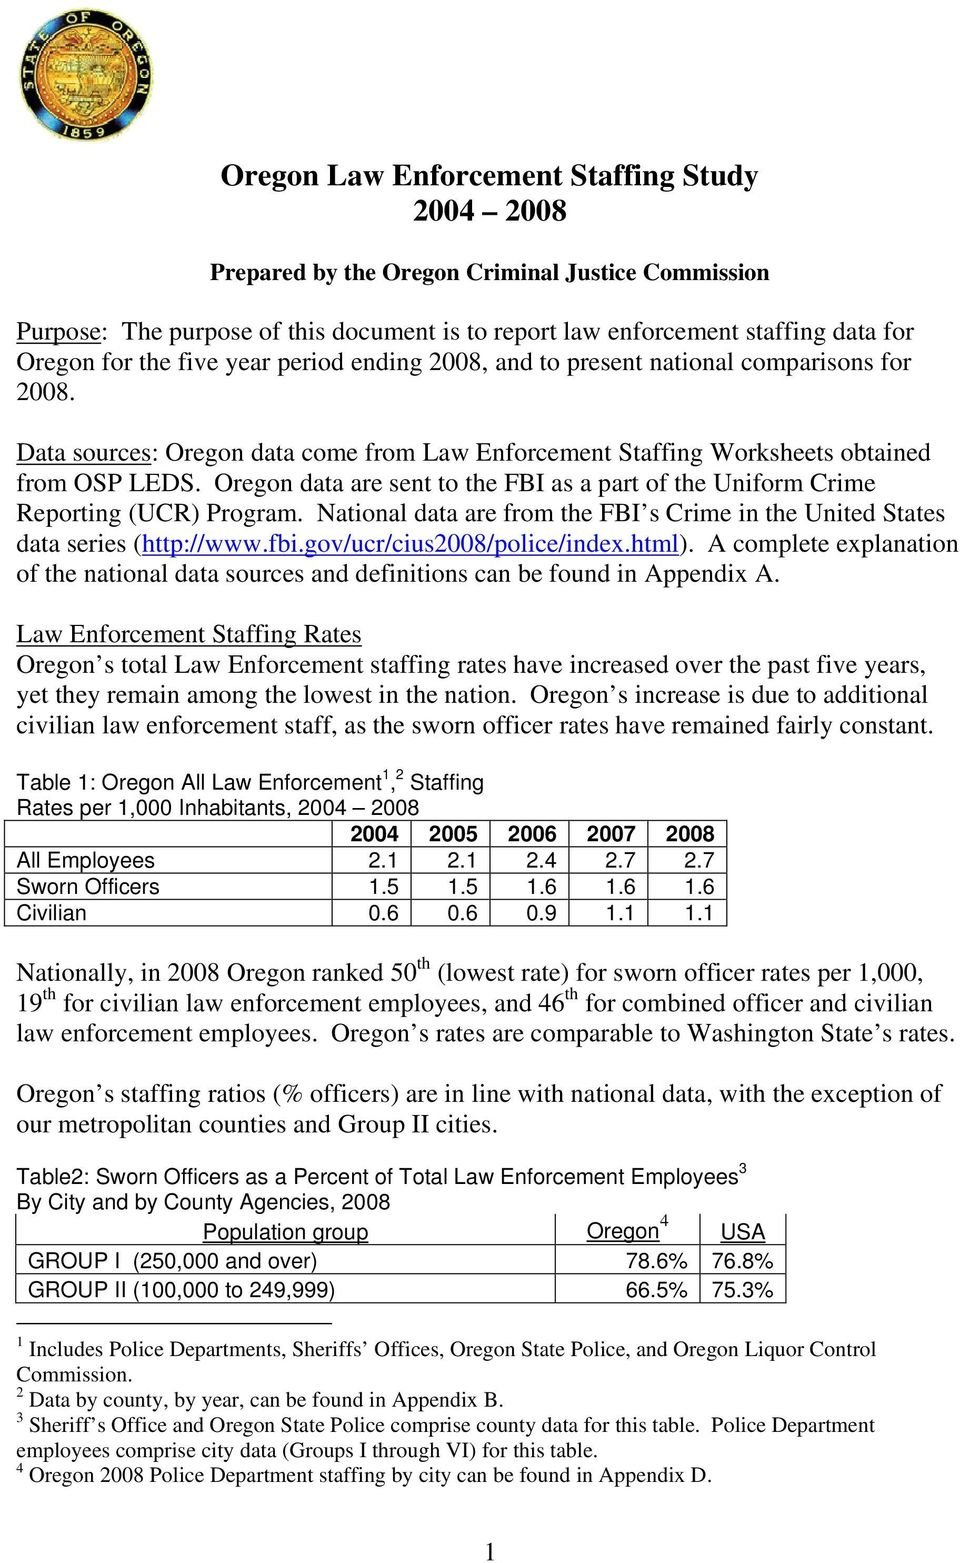 Oregon data are sent to the FBI as a part of the Uniform Crime Reporting (UCR) Program. National data are from the FBI s Crime in the United States data series (http://www.fbi.